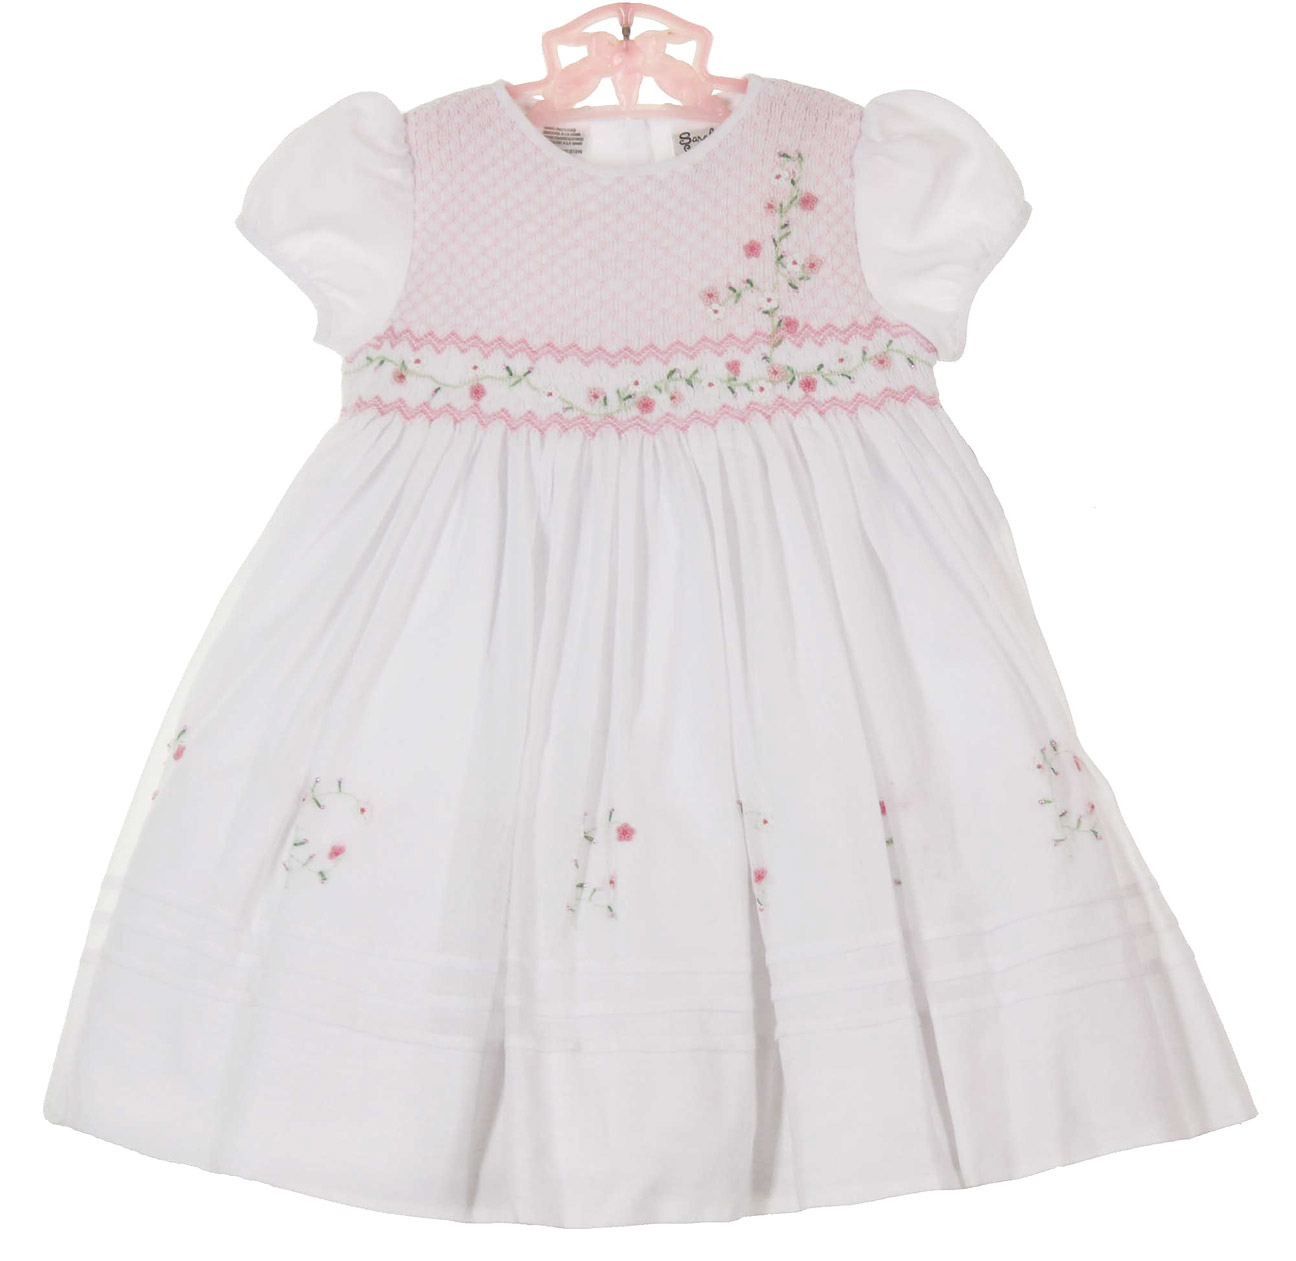 b431051690 Sarah Louise white voile smocked dress with exquisite embroidery ...